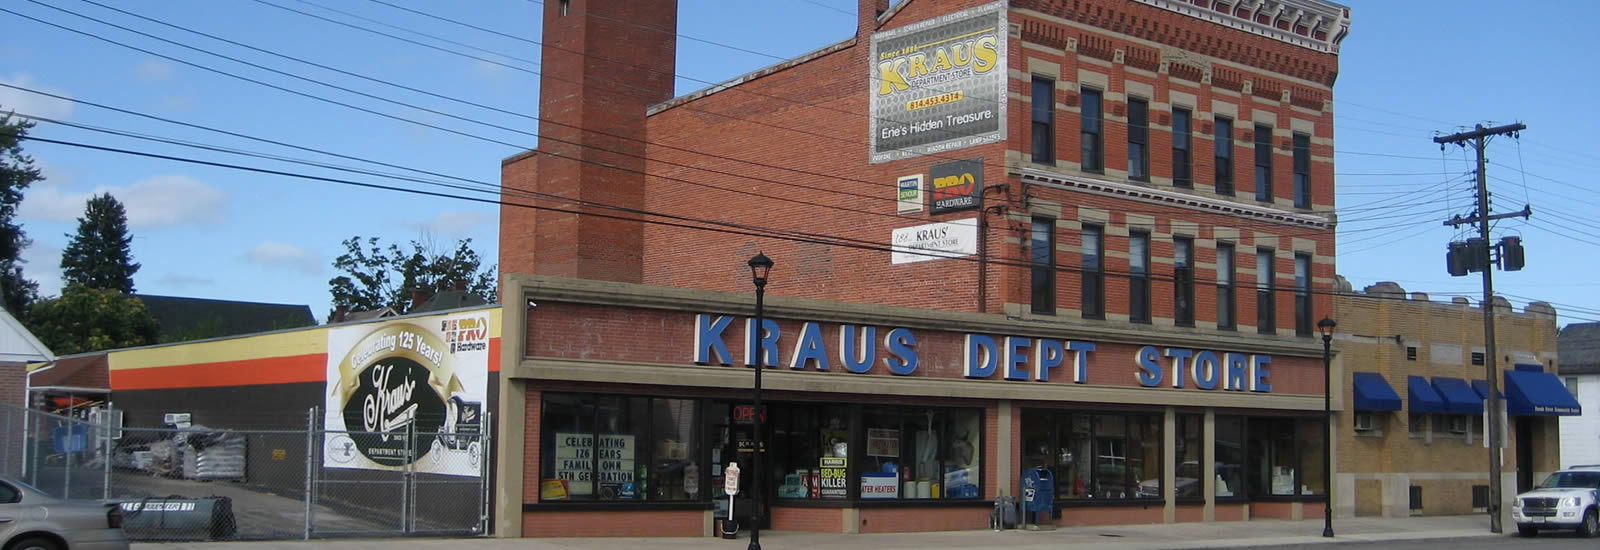 Kraus Department Store